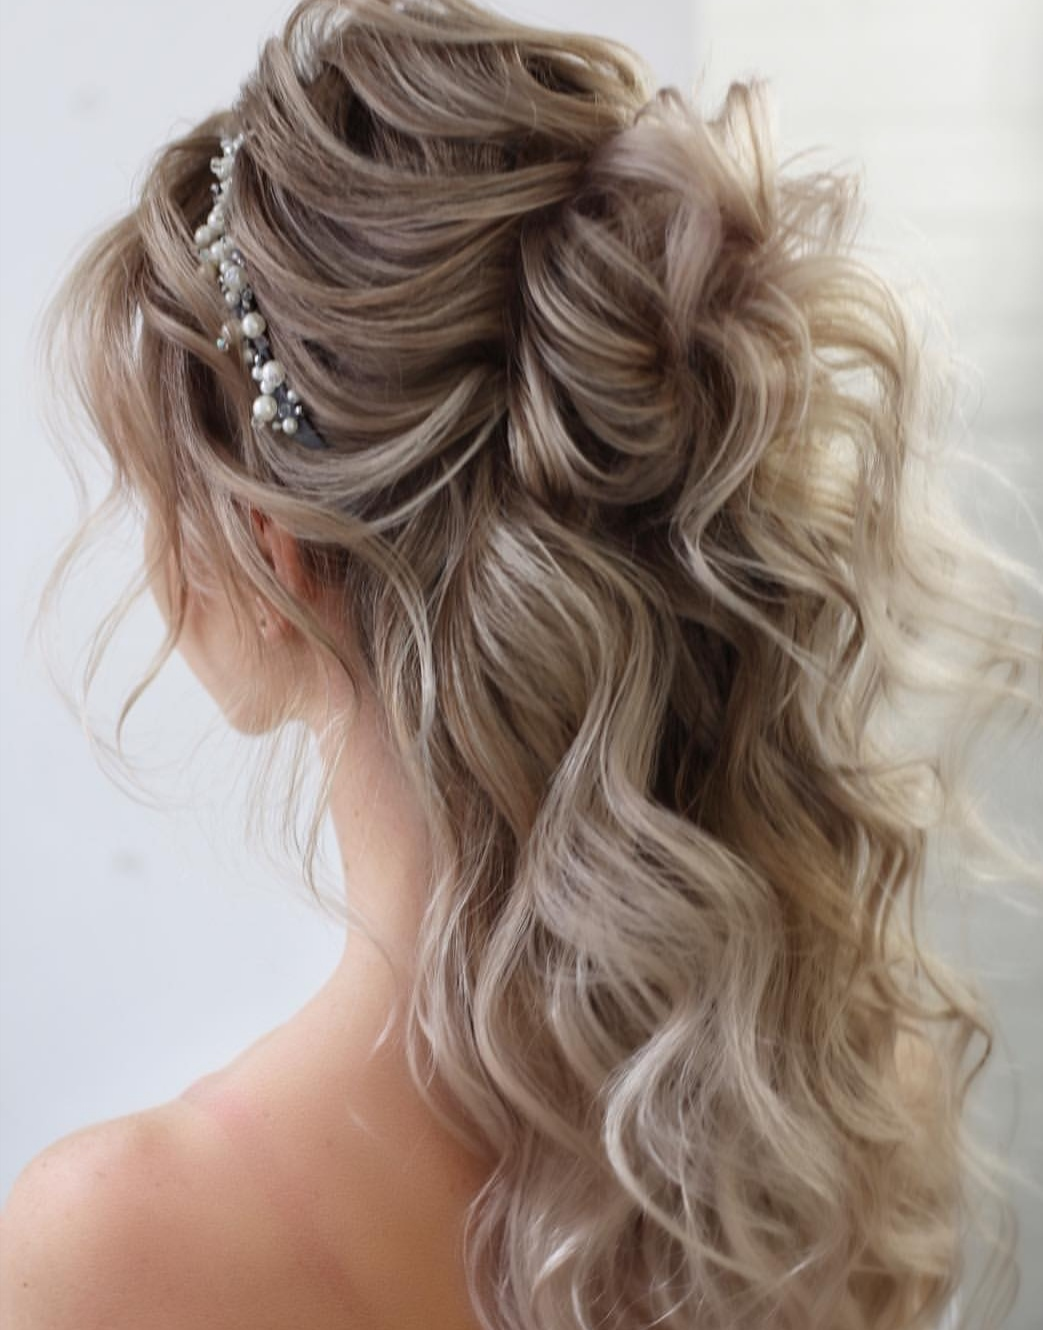 Half up Weddinghairstyles